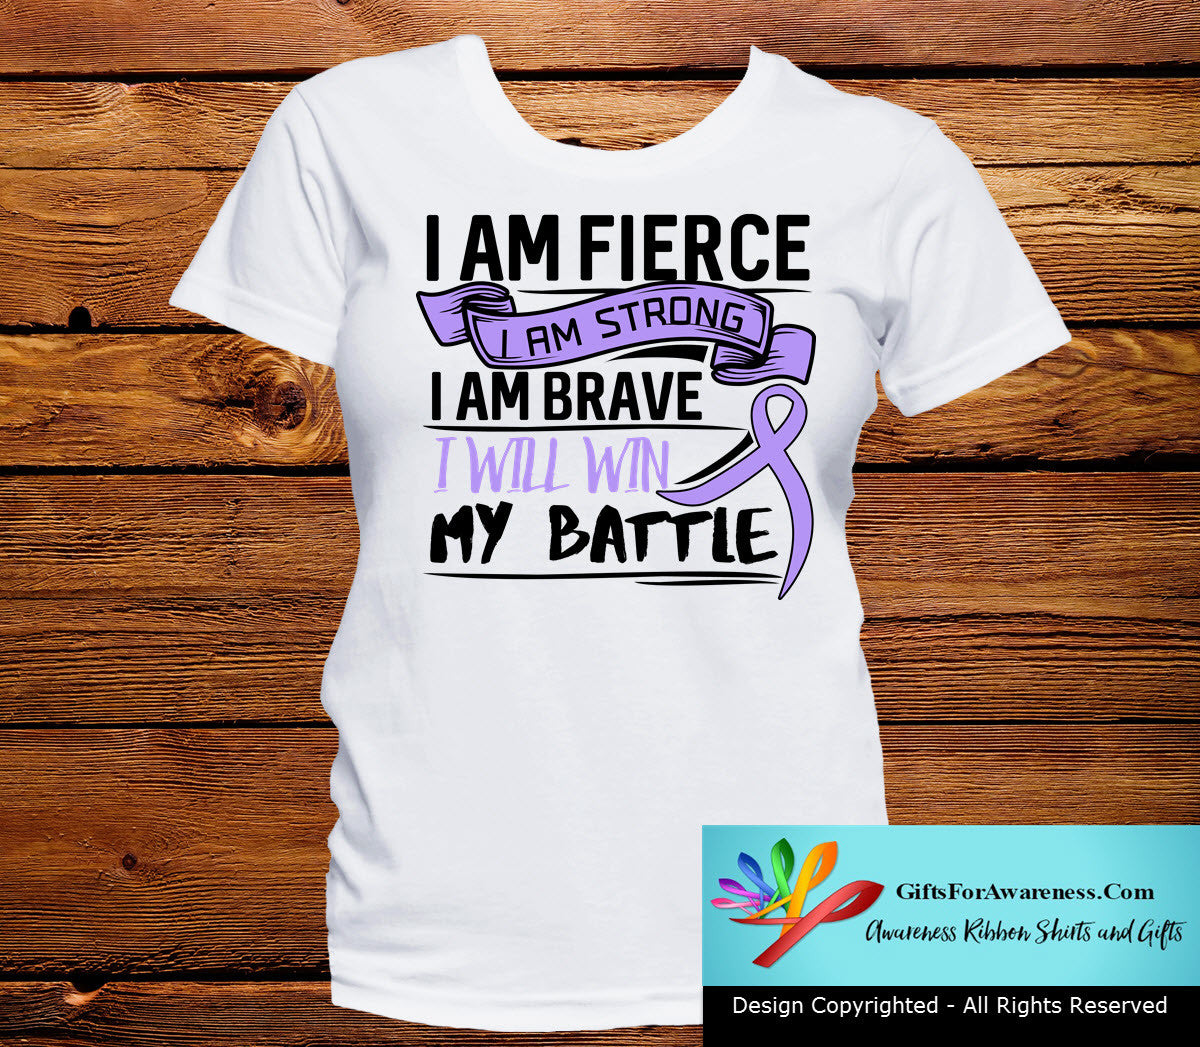 General Cancer I Am Fierce Strong and Brave Shirts - GiftsForAwareness